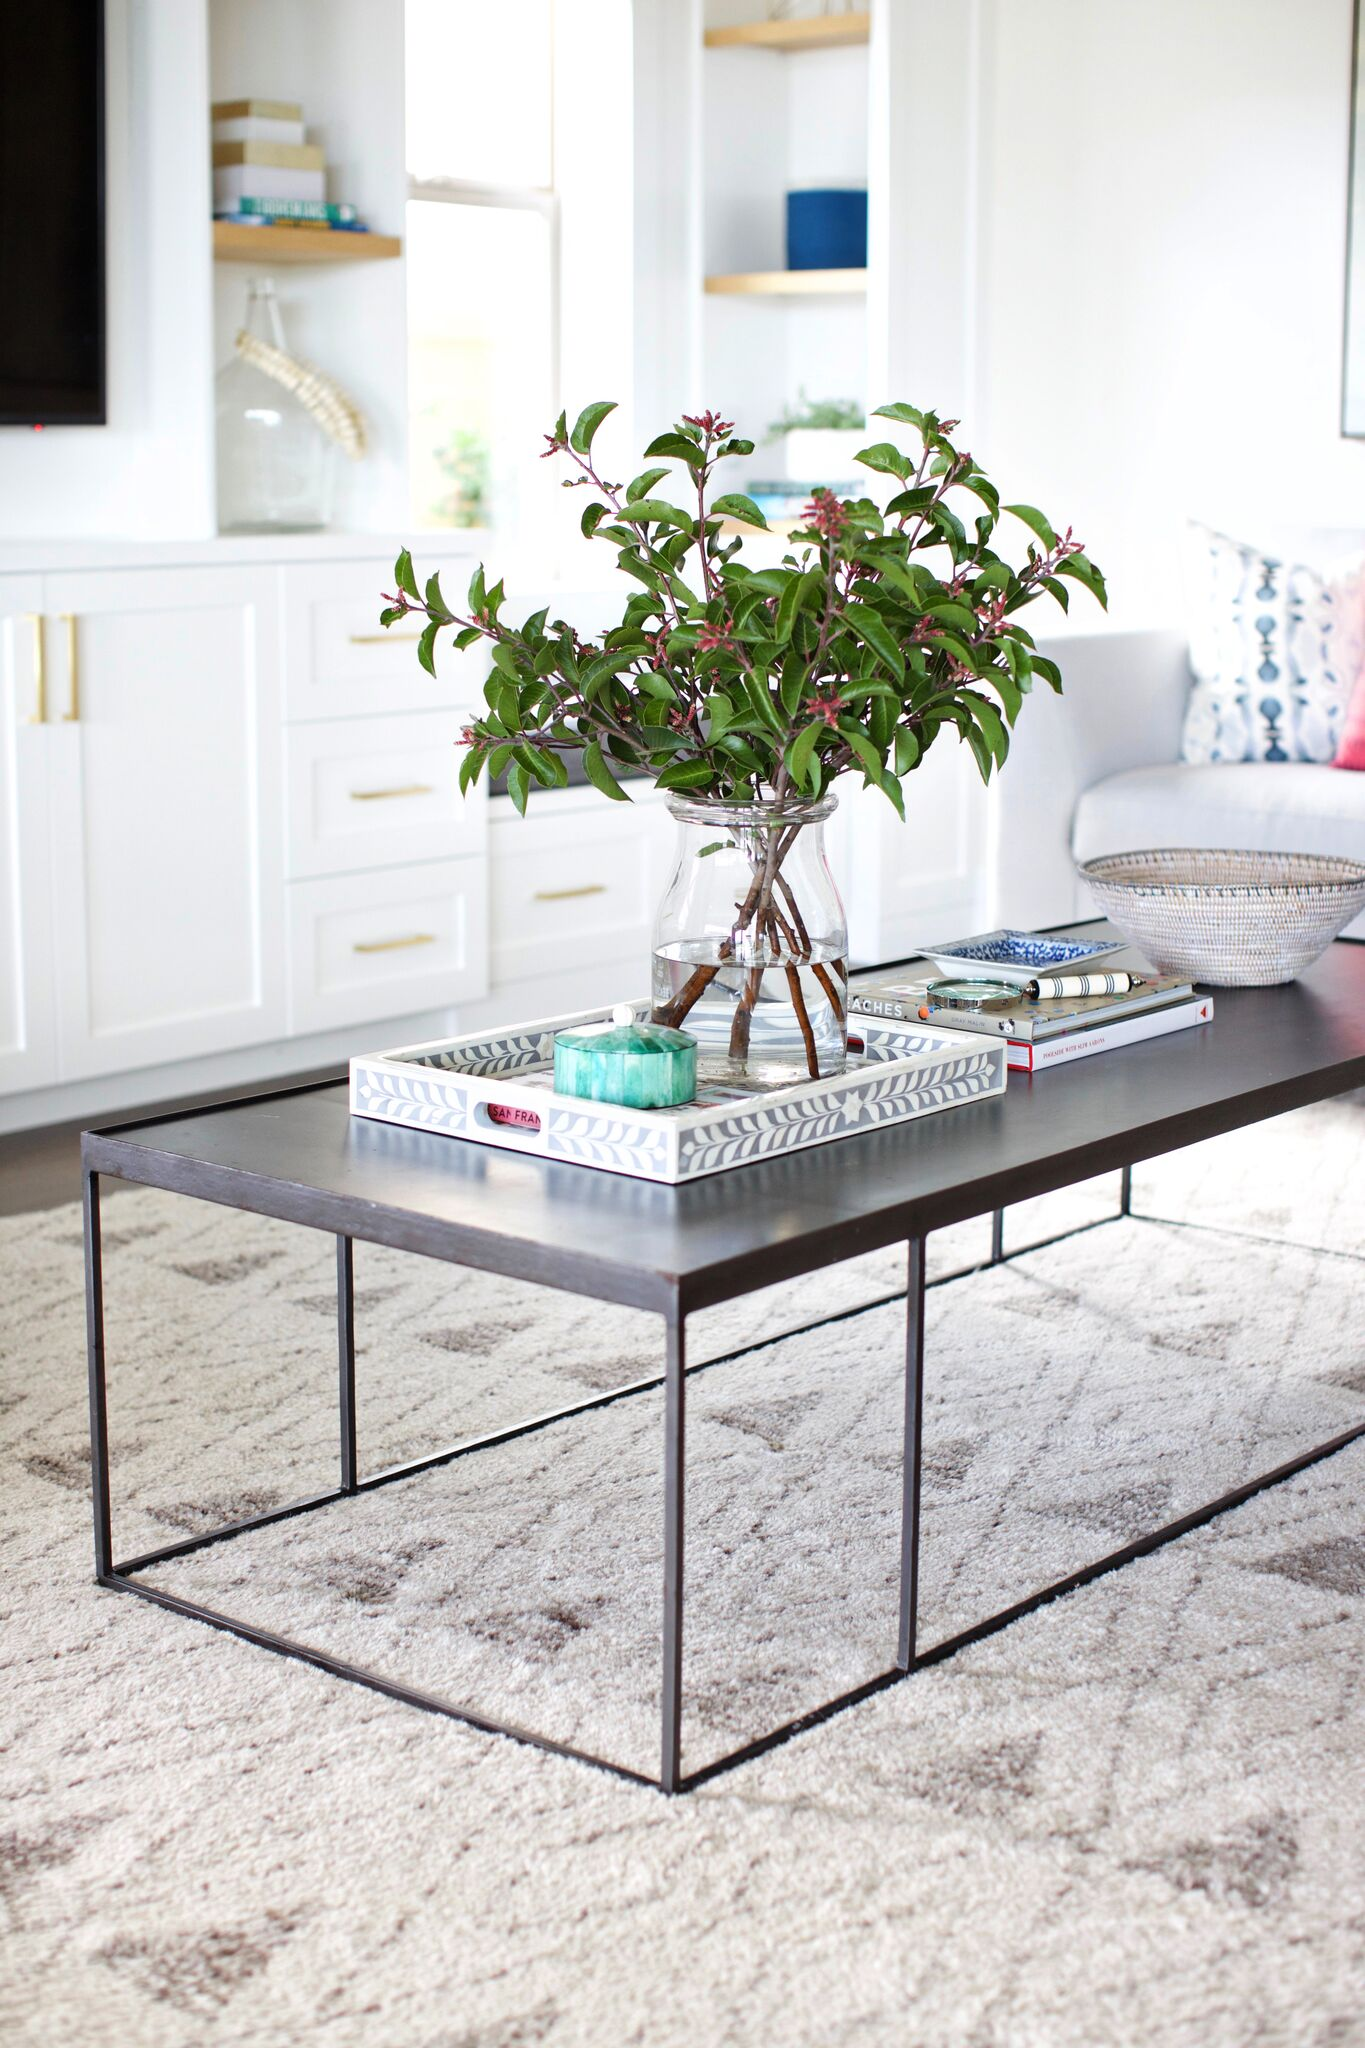 Large black coffee table with plants and items on top